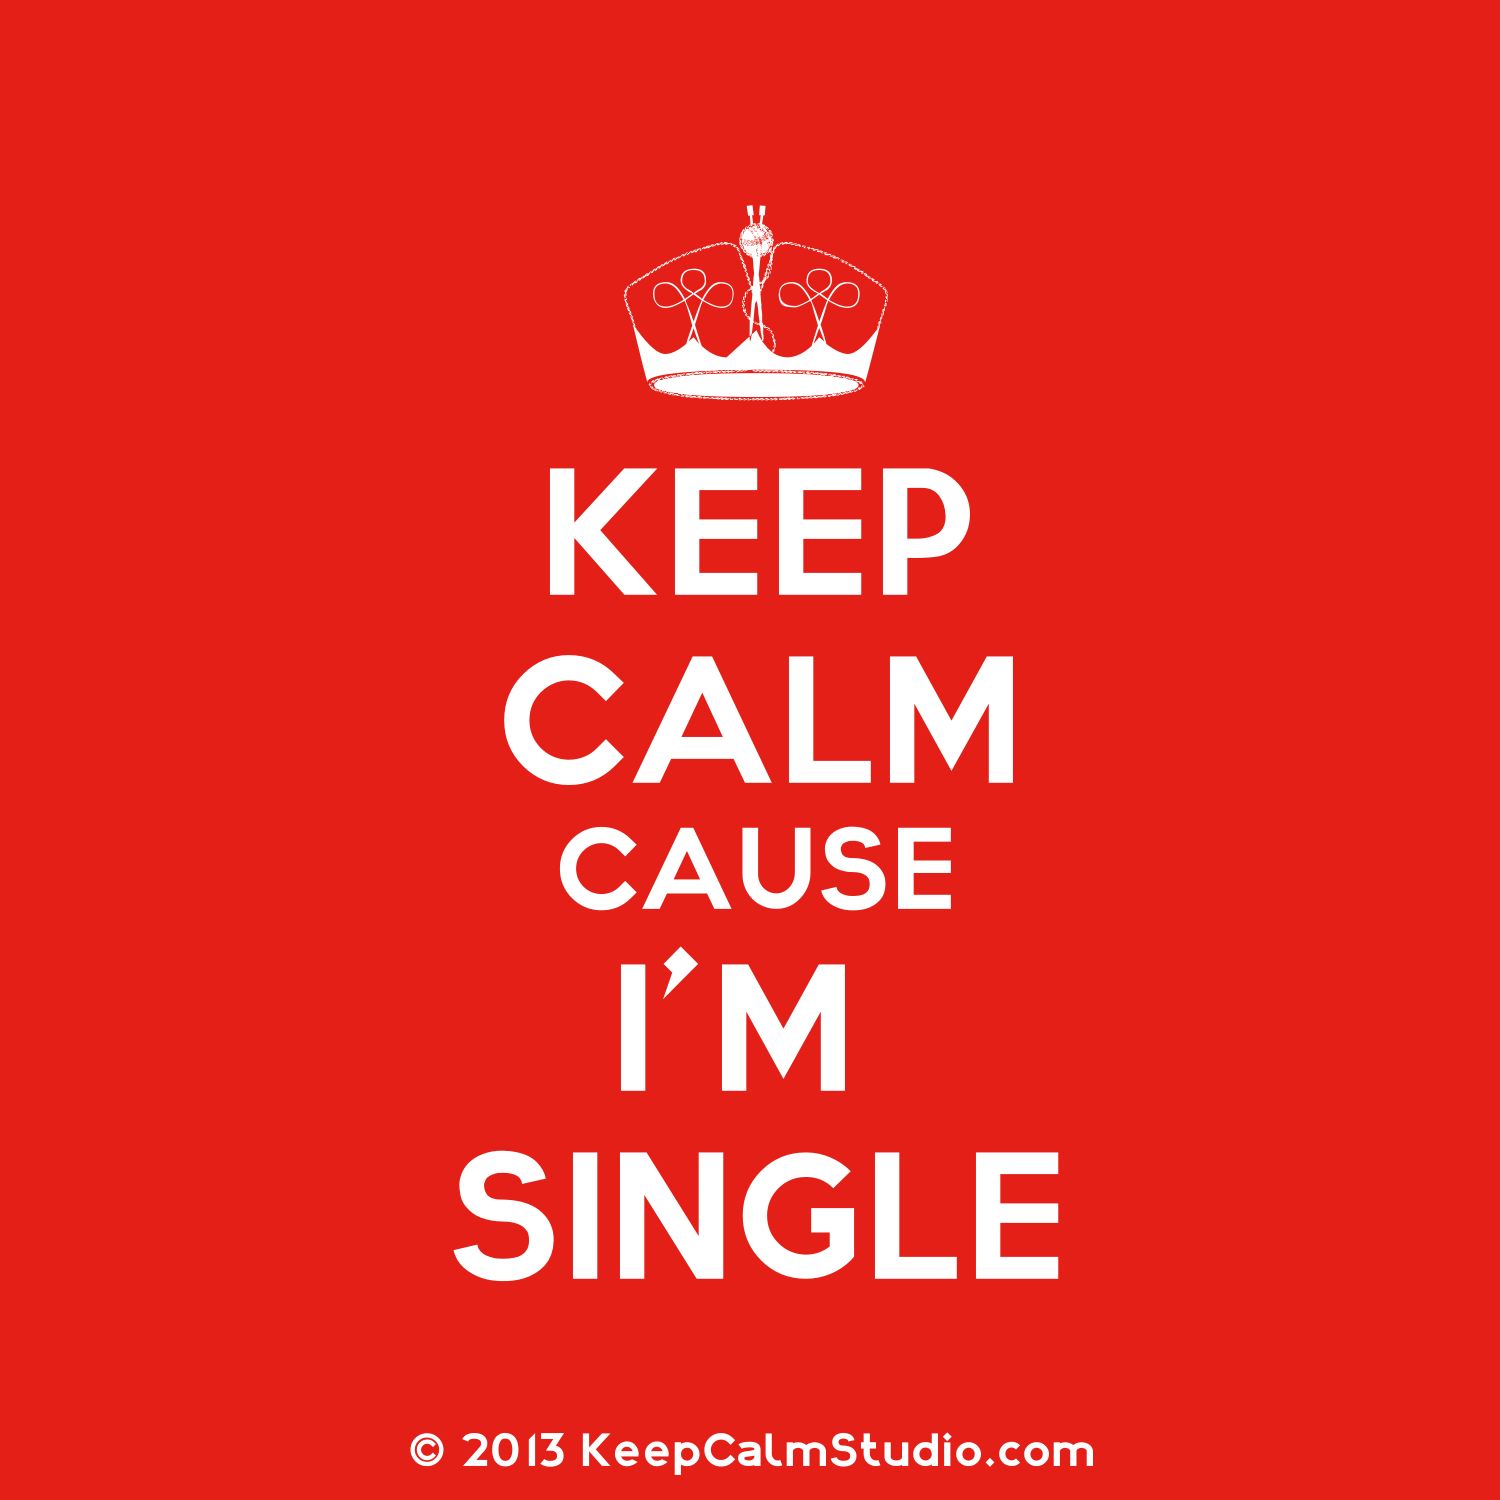 Keep calm cause I'm single | Keep Calm Cause I'm Single' design on t-shirt, poster, mug and many ...